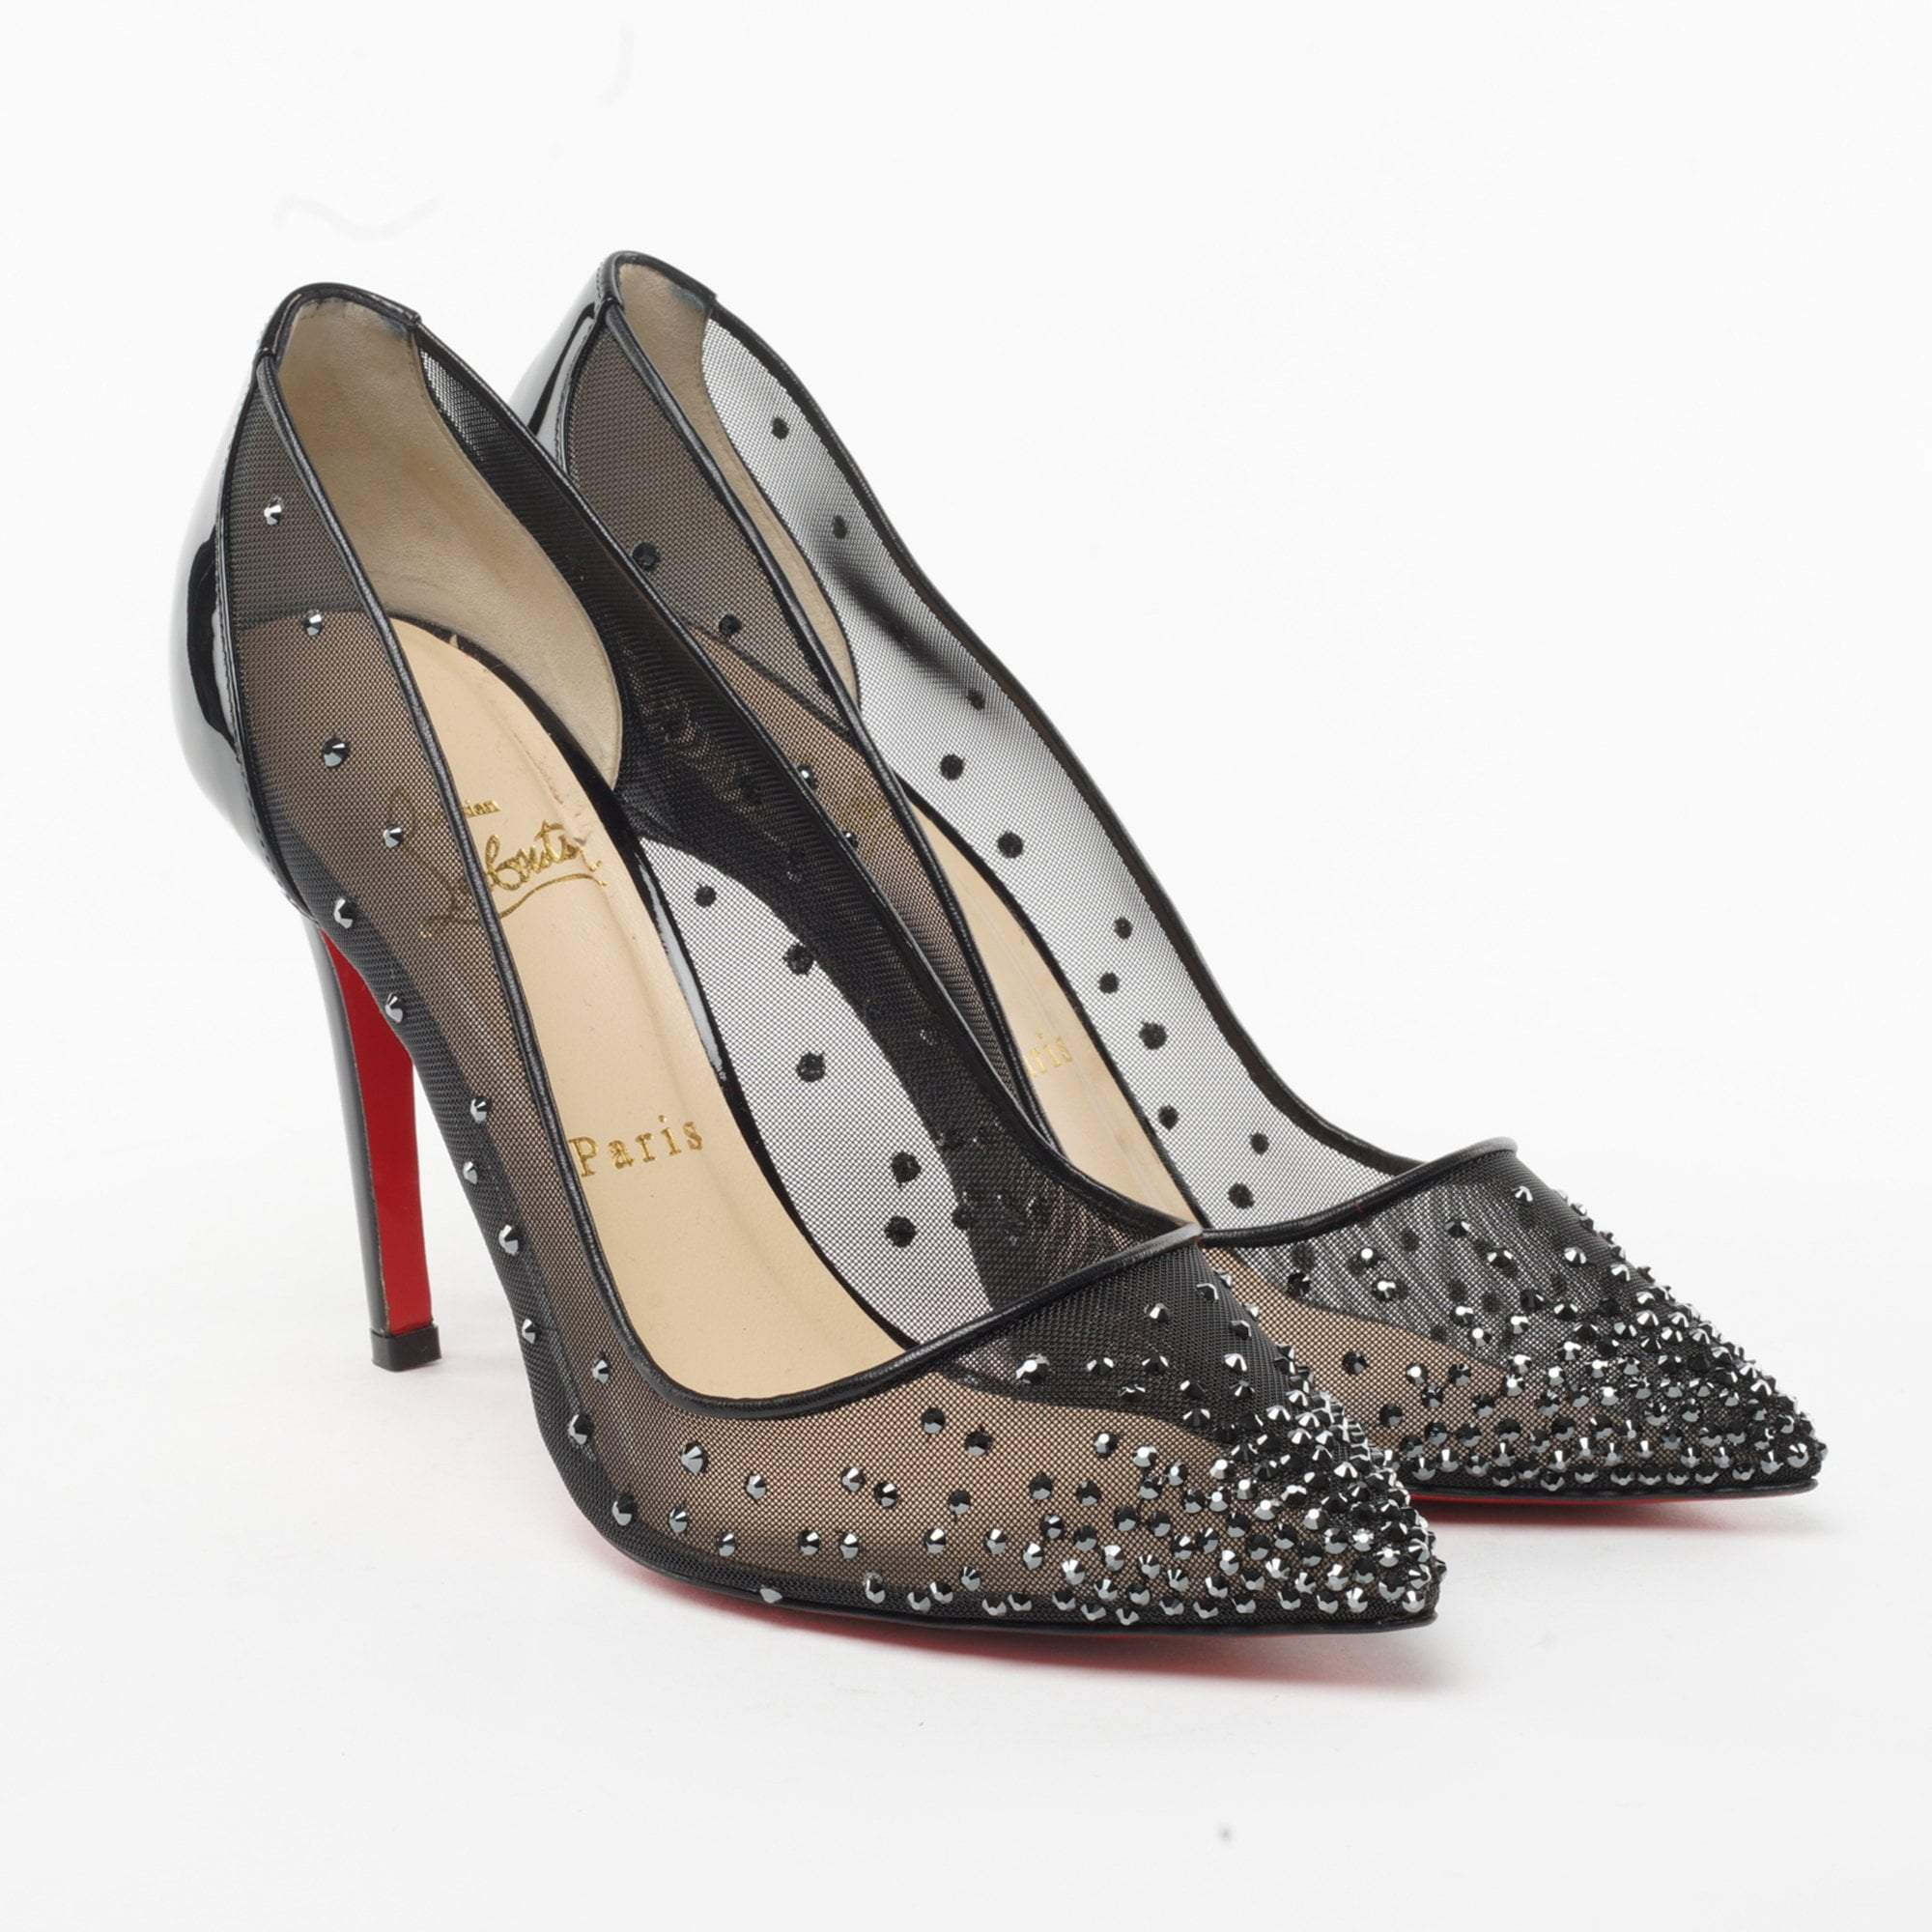 premium selection 575ff 74347 Christian Louboutin Follies Strass Mesh Pumps – Garderobe